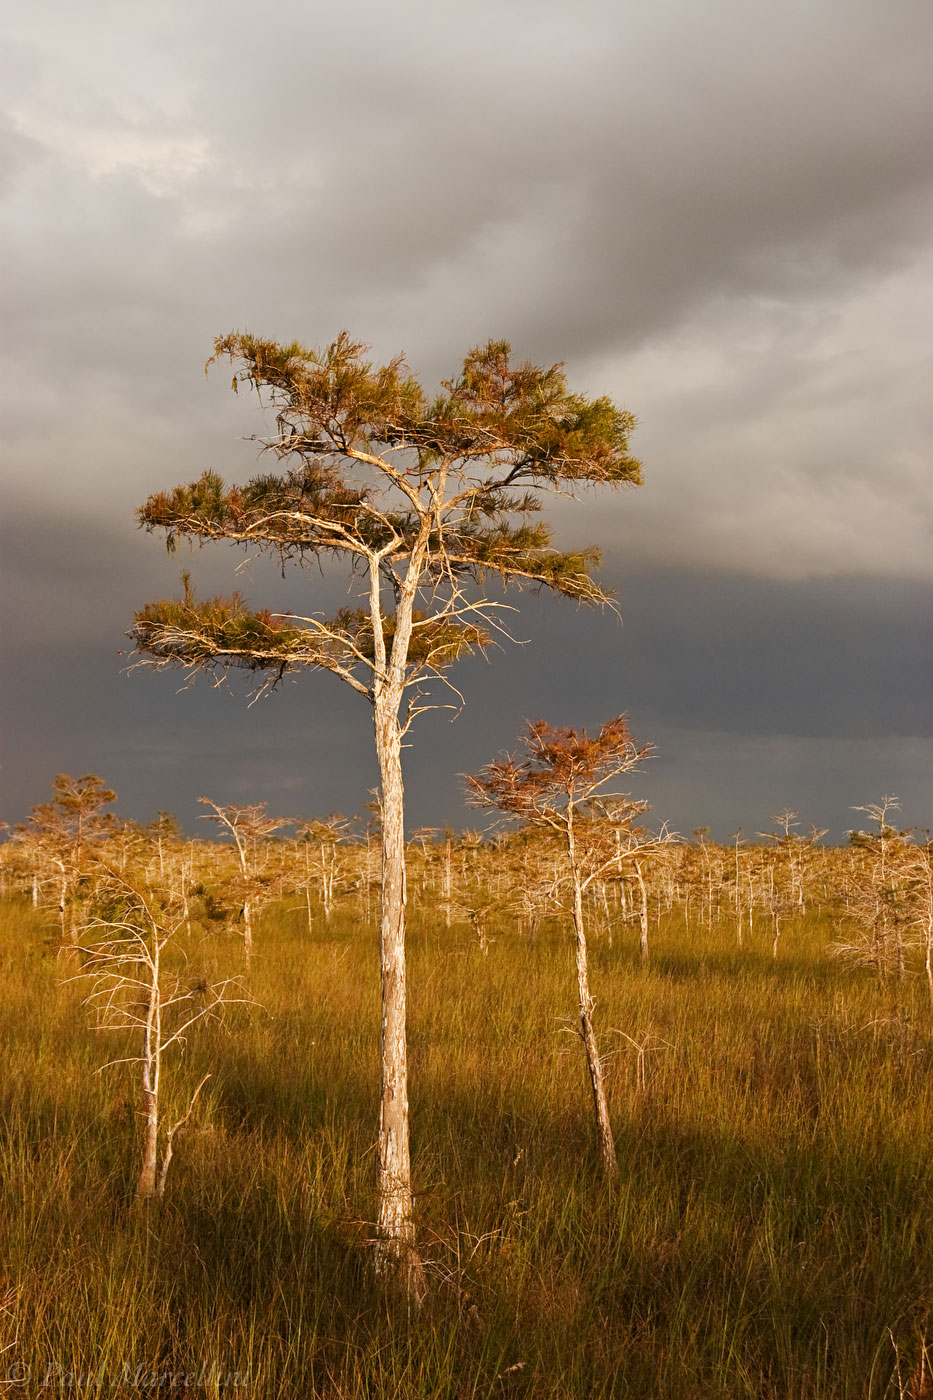 dwarf cypress, everglades, storm, Florida, nature, photography, florida national parks, photo